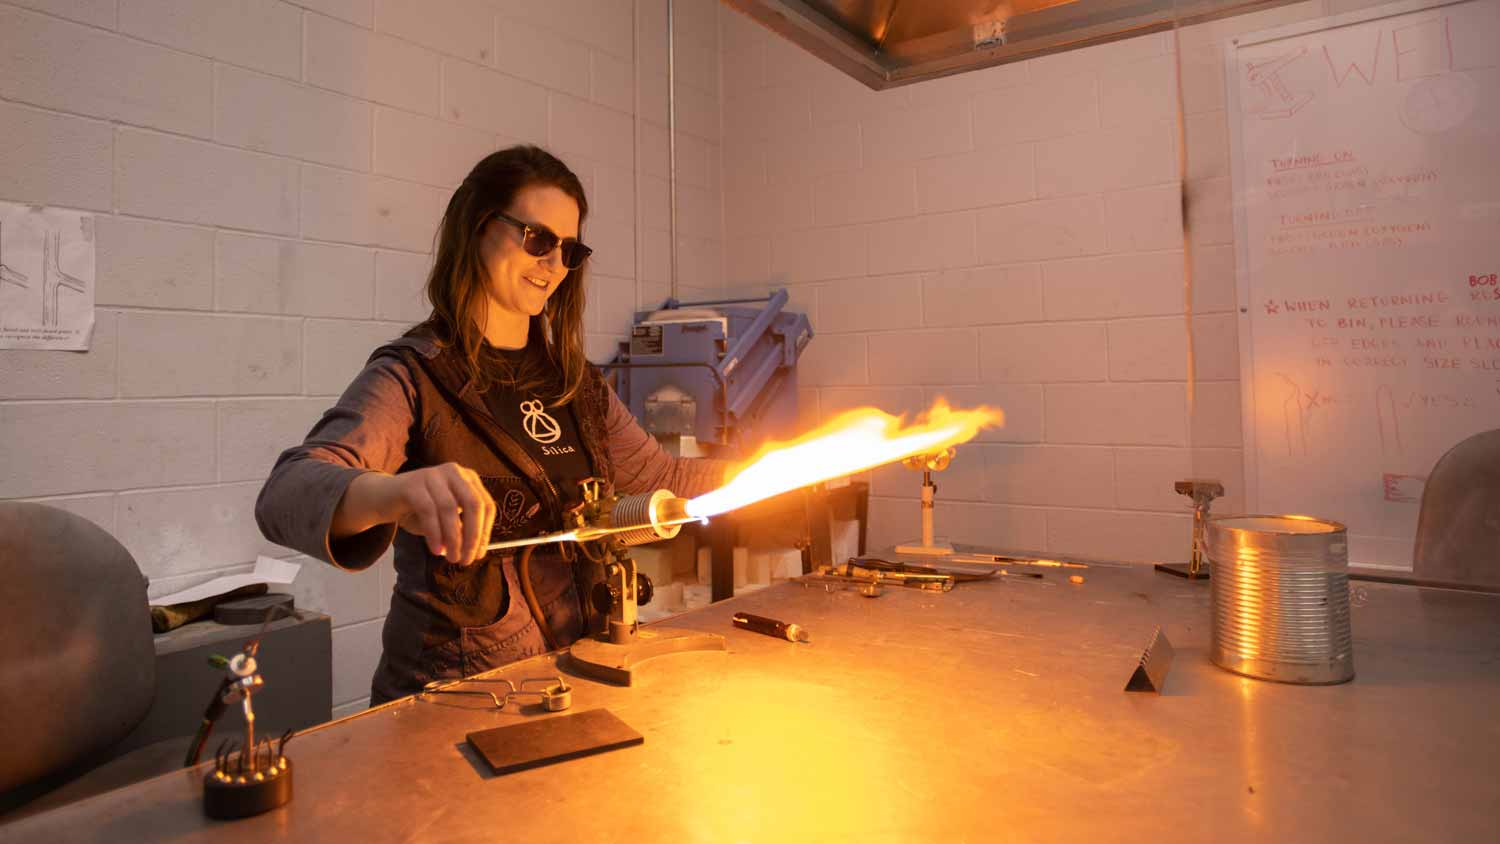 Student igniting a torch to heat metal